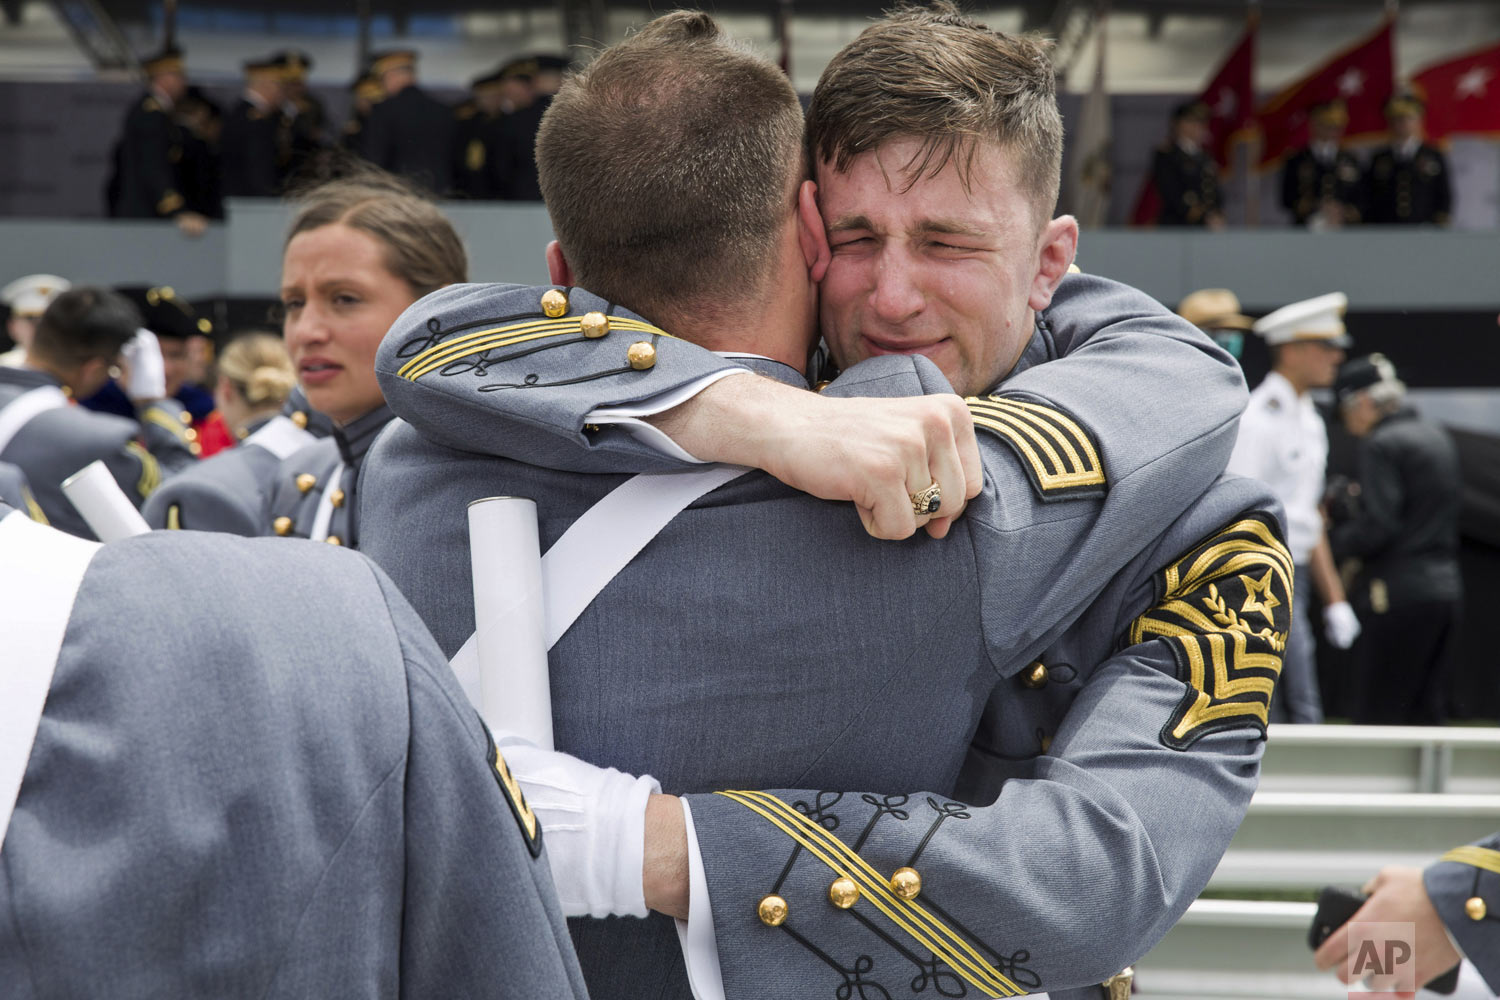 West Point cadets hug each other at the end of graduation ceremonies at the United States Military Academy in West Point, N.Y., on Saturday, May 25, 2019. (AP Photo/Julius Constantine Motal)